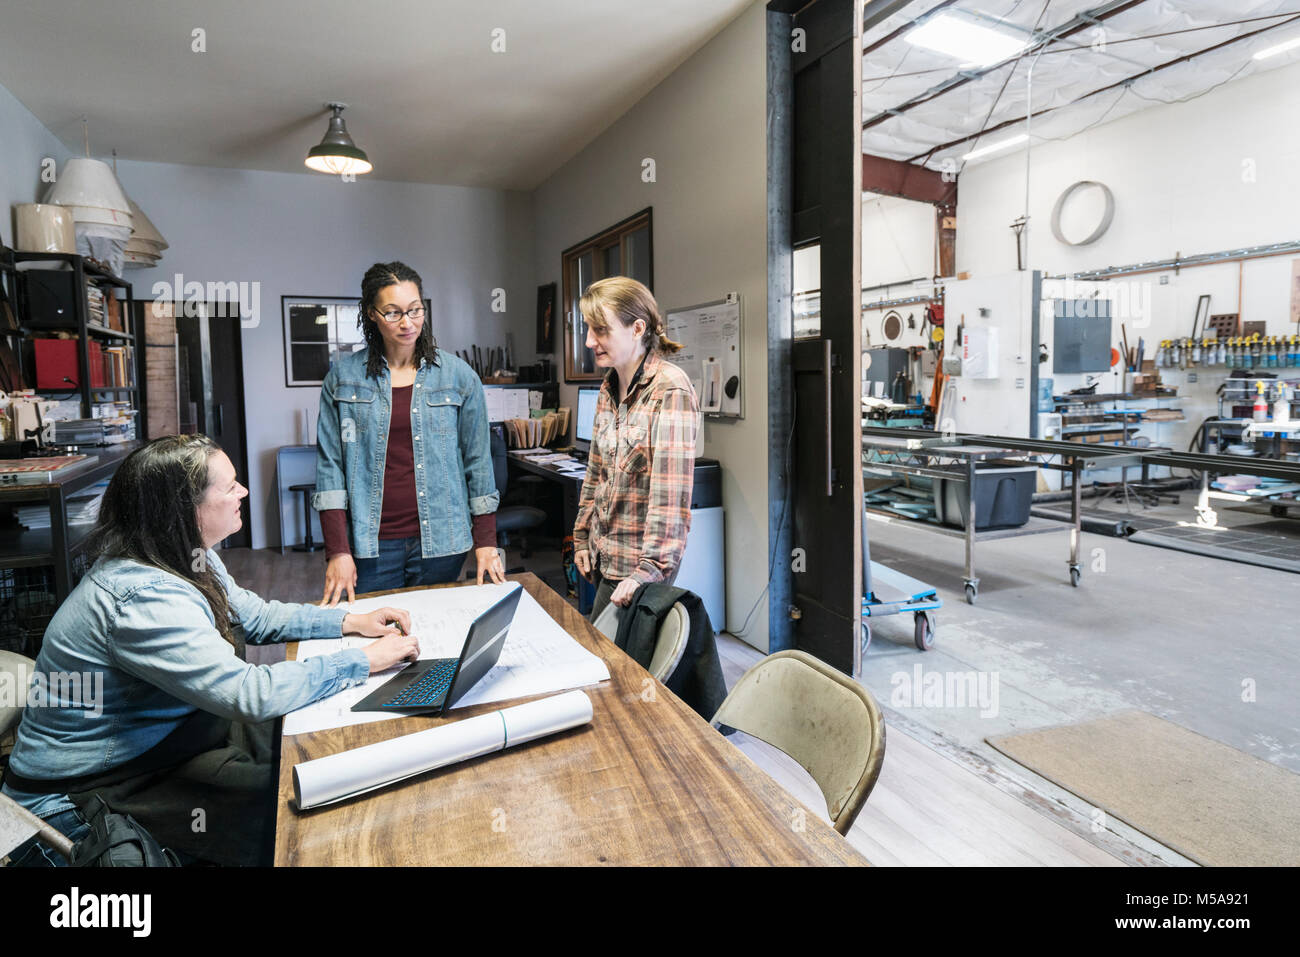 Three women gathered around table in office area of a metal workshop. Stock Photo